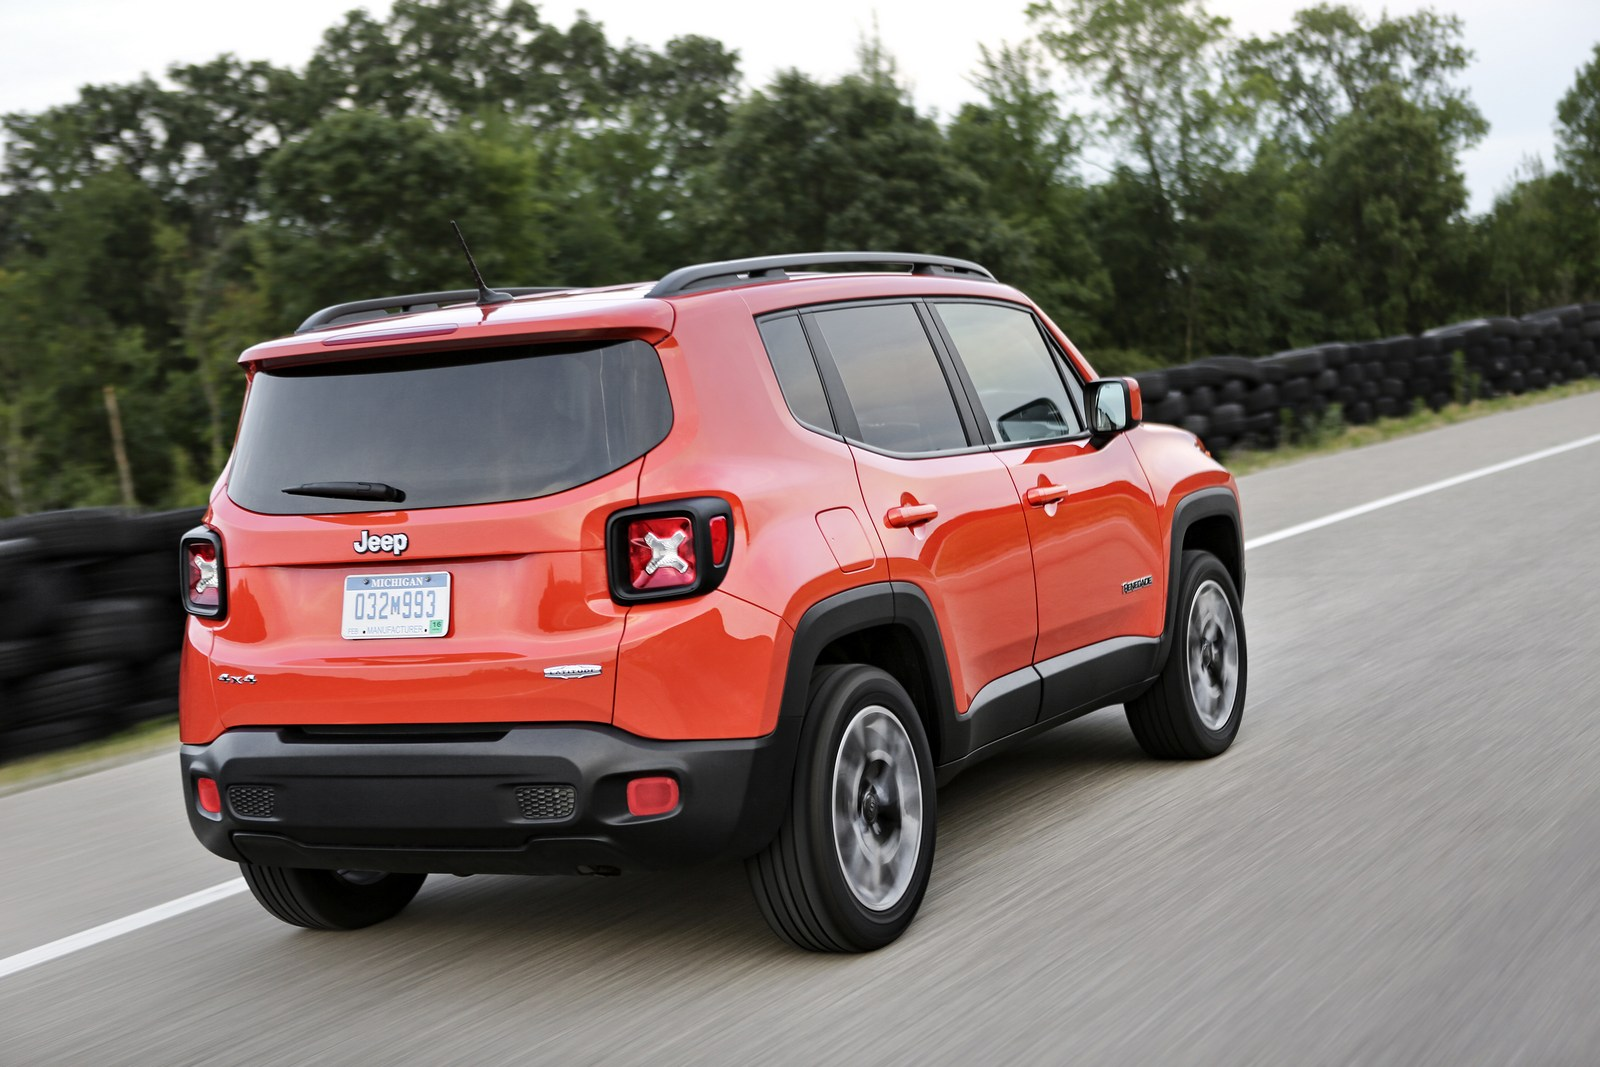 Jeep Renegade Roof >> 2018 Jeep Renegade Gains An Updated Interior And New Standard Equipment | Carscoops